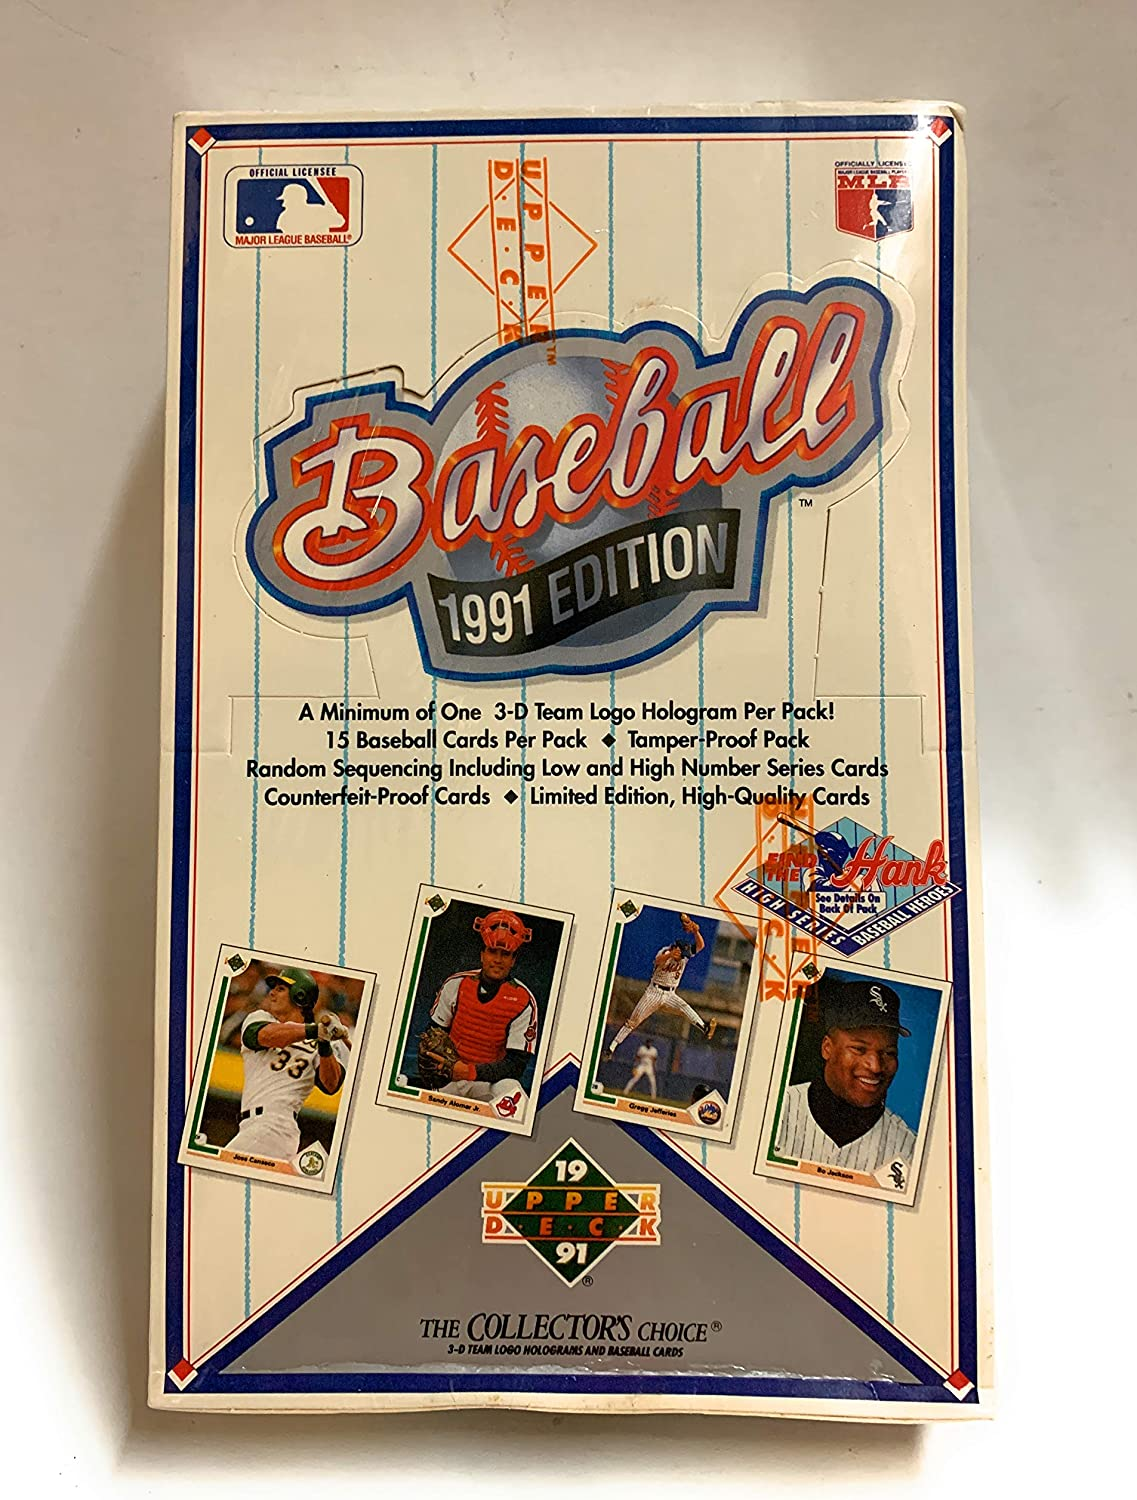 1991 Upper Deck Baseball Cards Series 1 Pack 15 cards per pack, possible Chipper Jones Rookie Card!